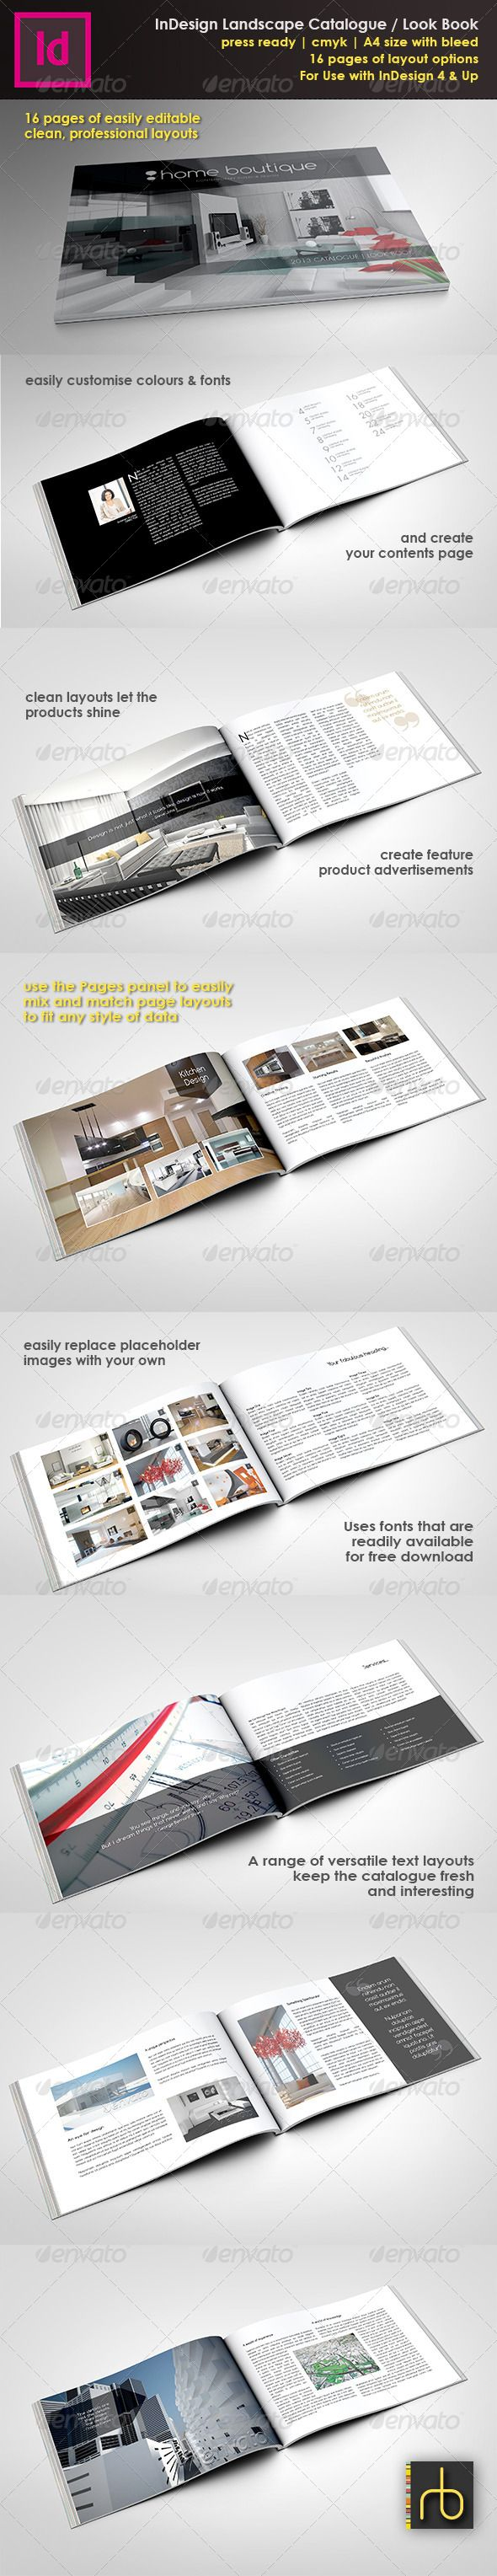 95 best Design images on Pinterest | Page layout, Editorial design ...